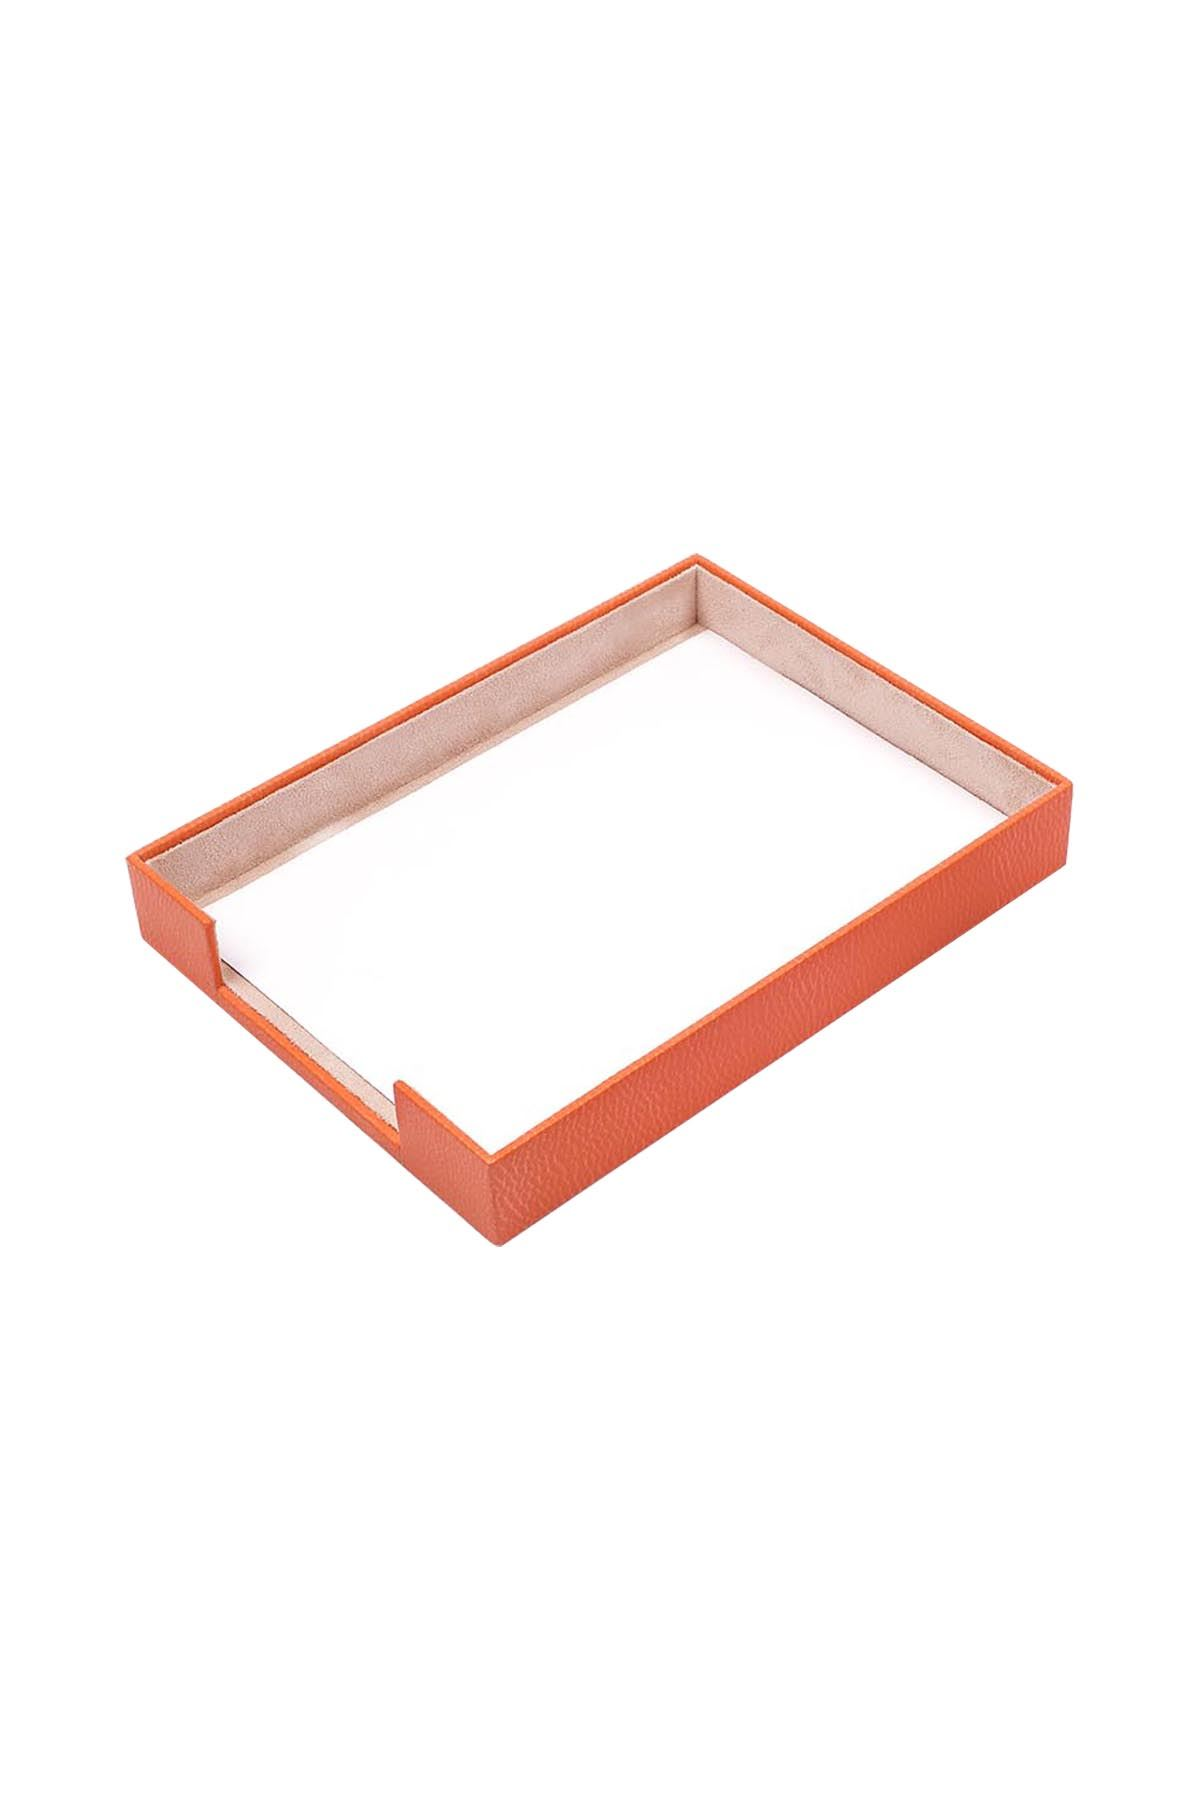 Document Tray Orange| Leather Document Organizer | Leather Tray | Leather Organizer | Document Shelf